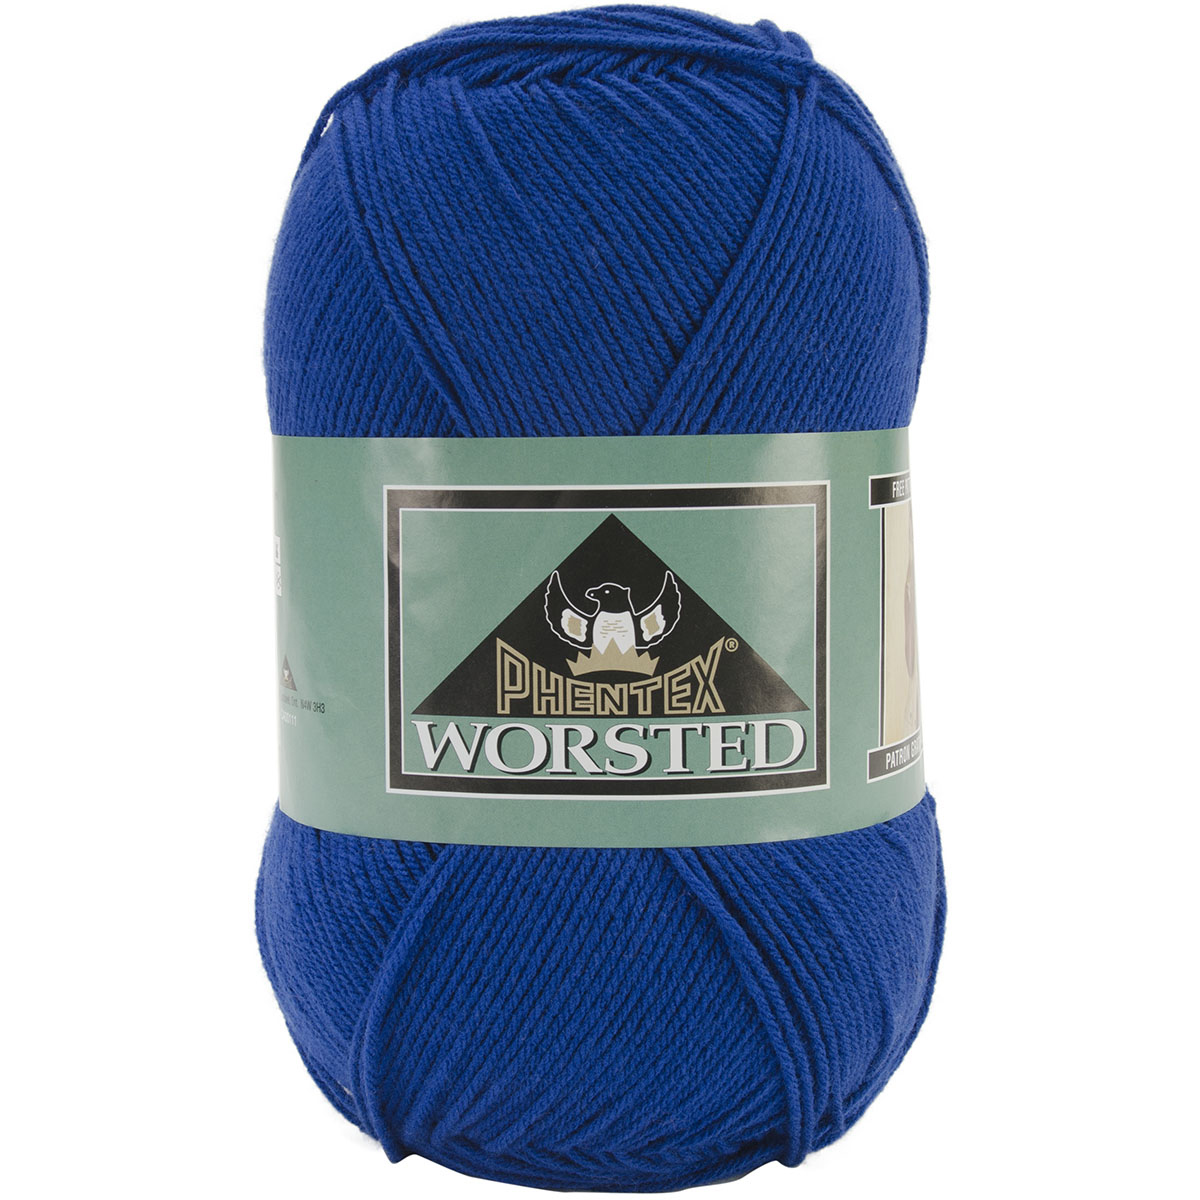 Phentex Worsted Yarn Solids